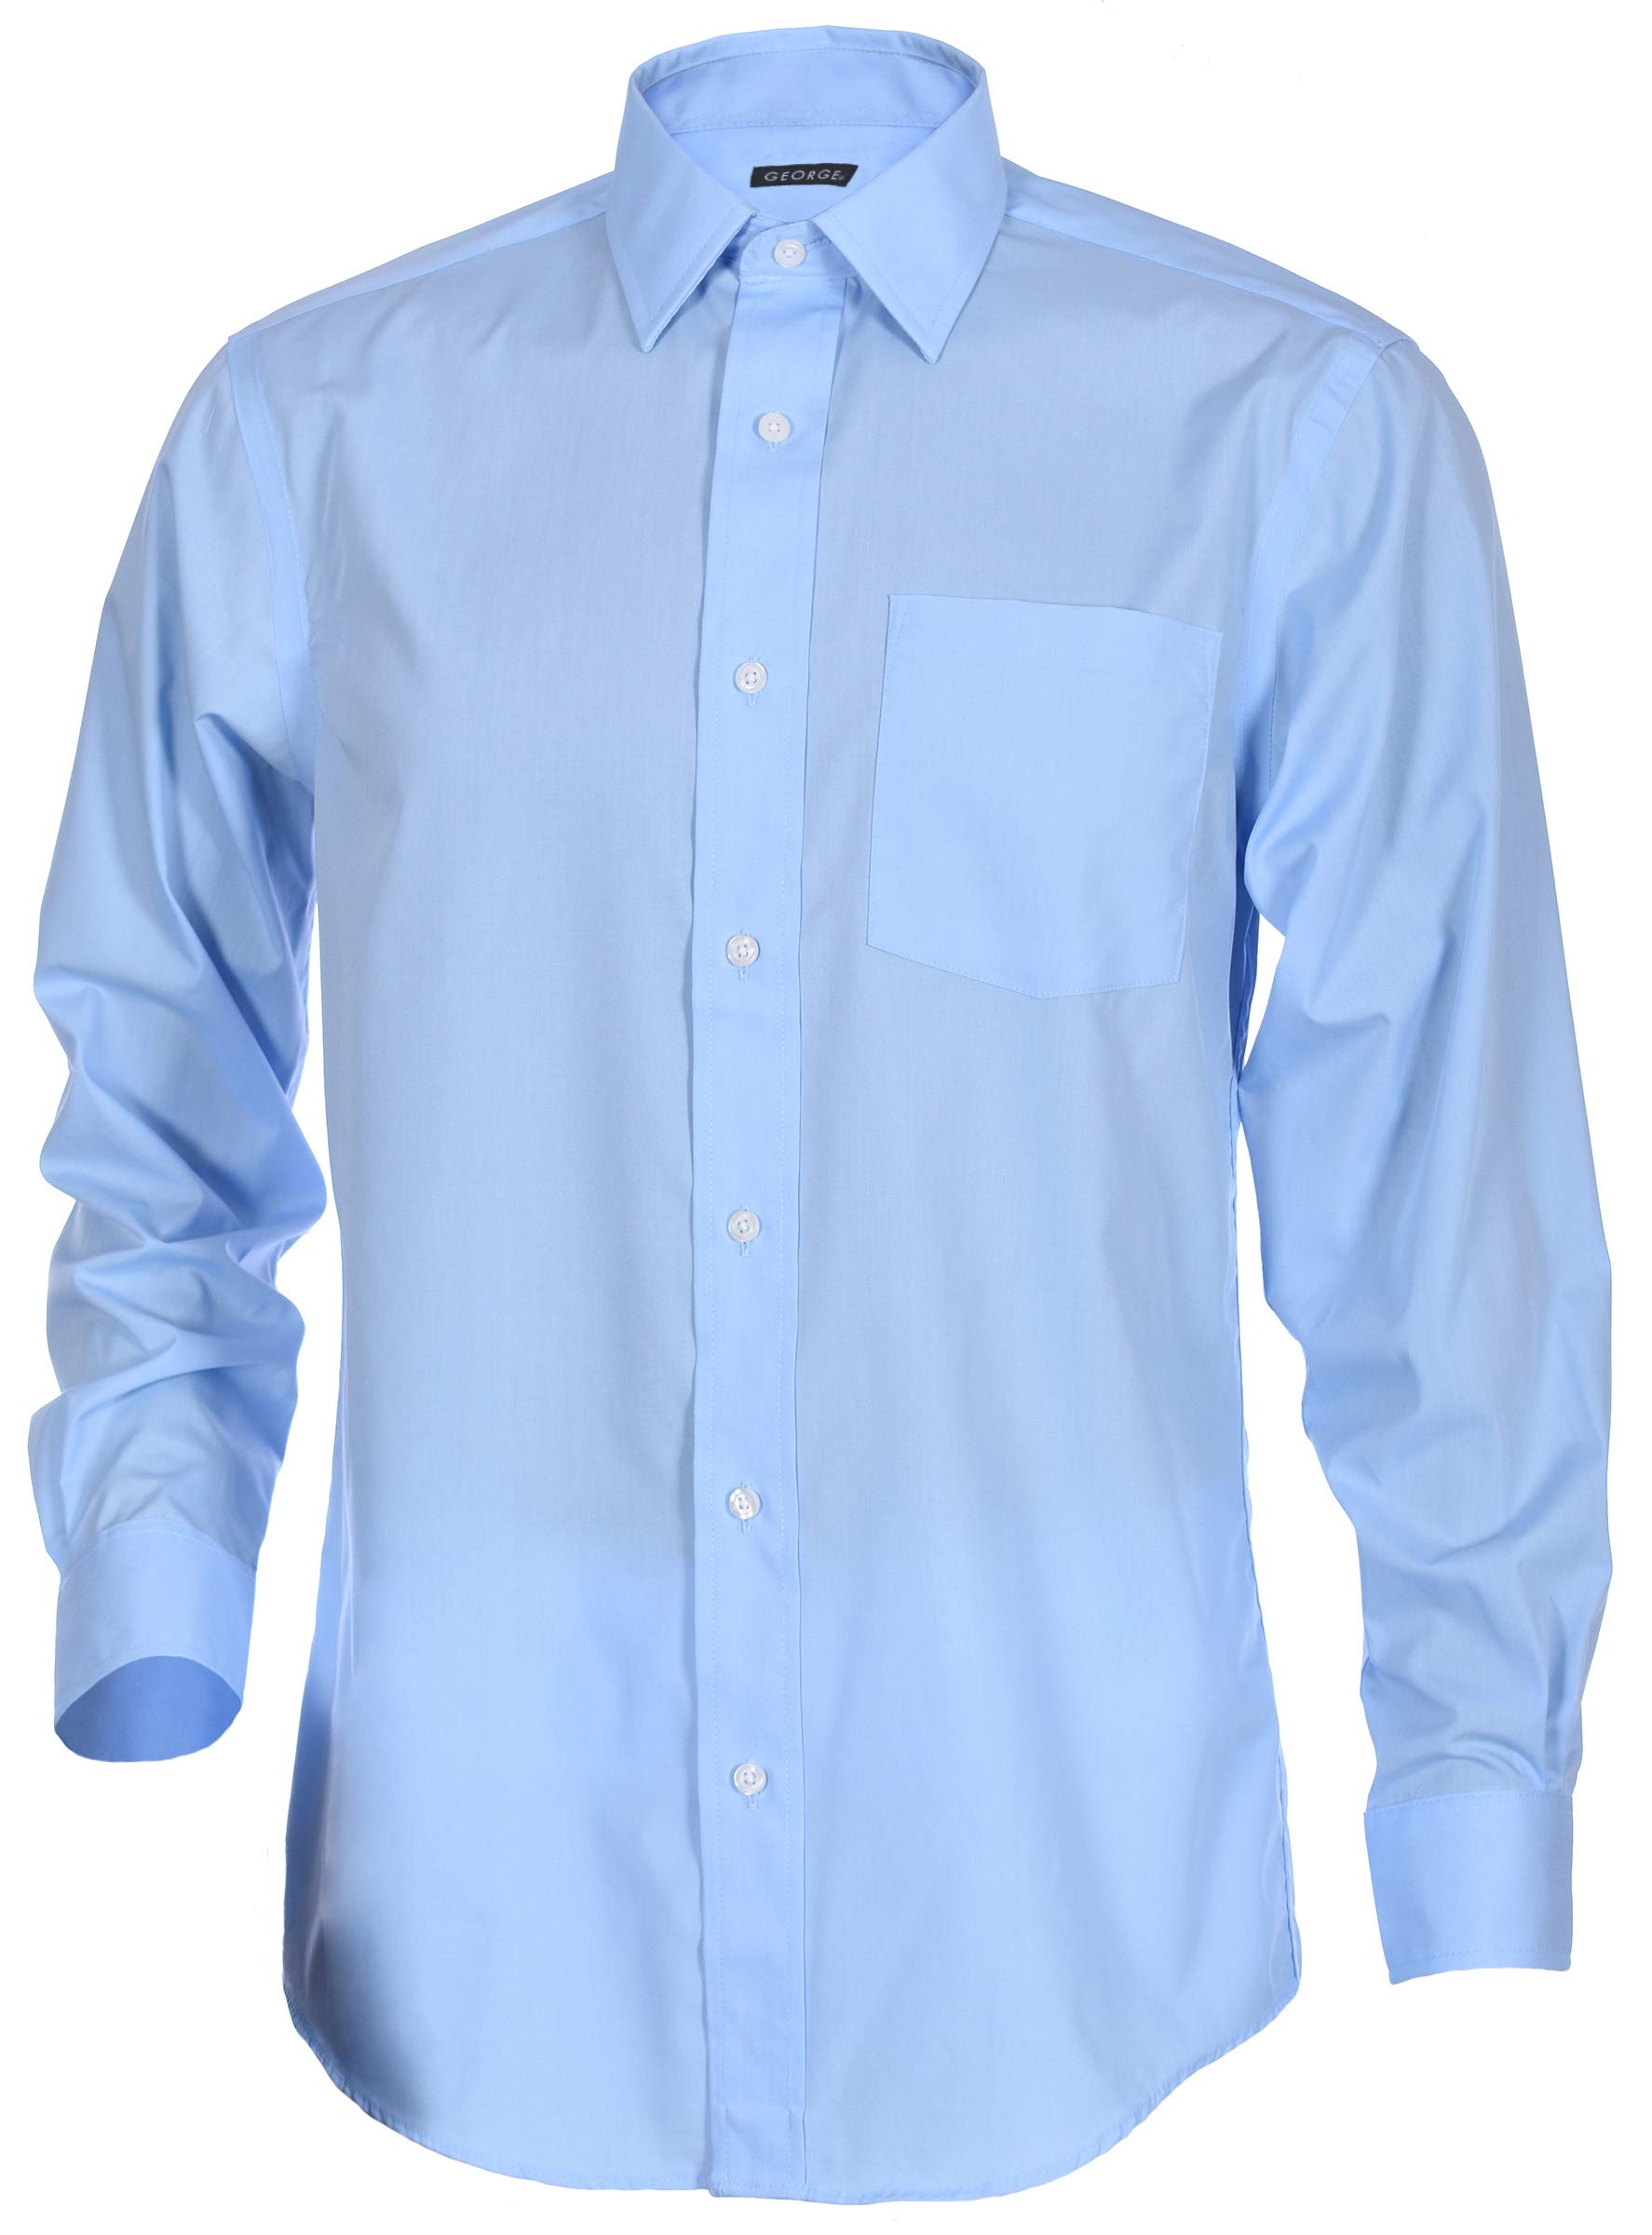 George Men's Classic Fit Long Sleeve Poplin Solid Button-Up Dress Shirts (Medium Long, Medium Blue) by George (Image #1)